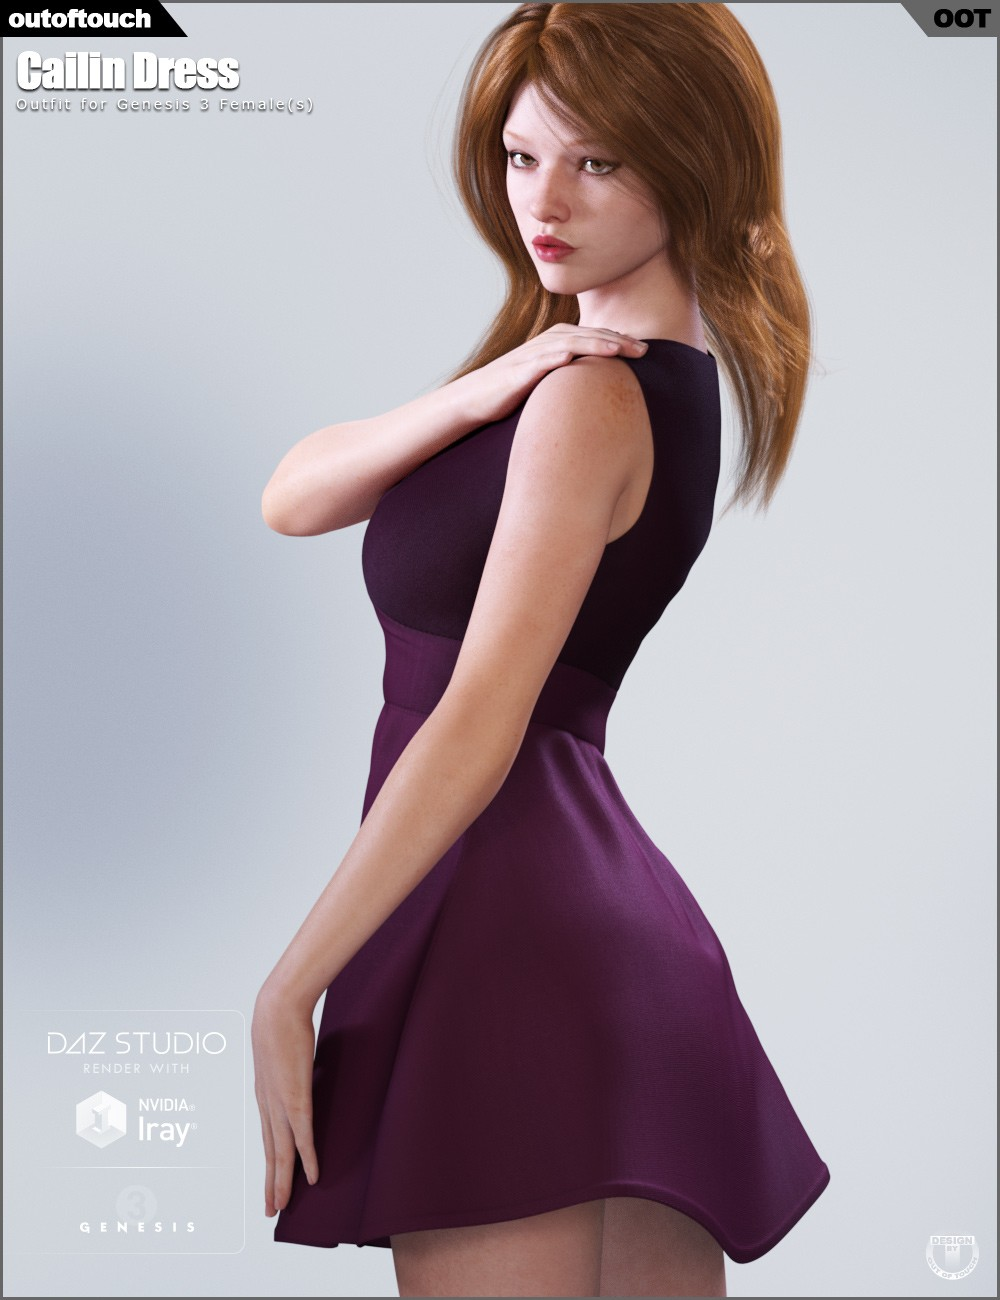 Daz Studio 3 For Free Daz 3d For Genesis 3 - Imagez co